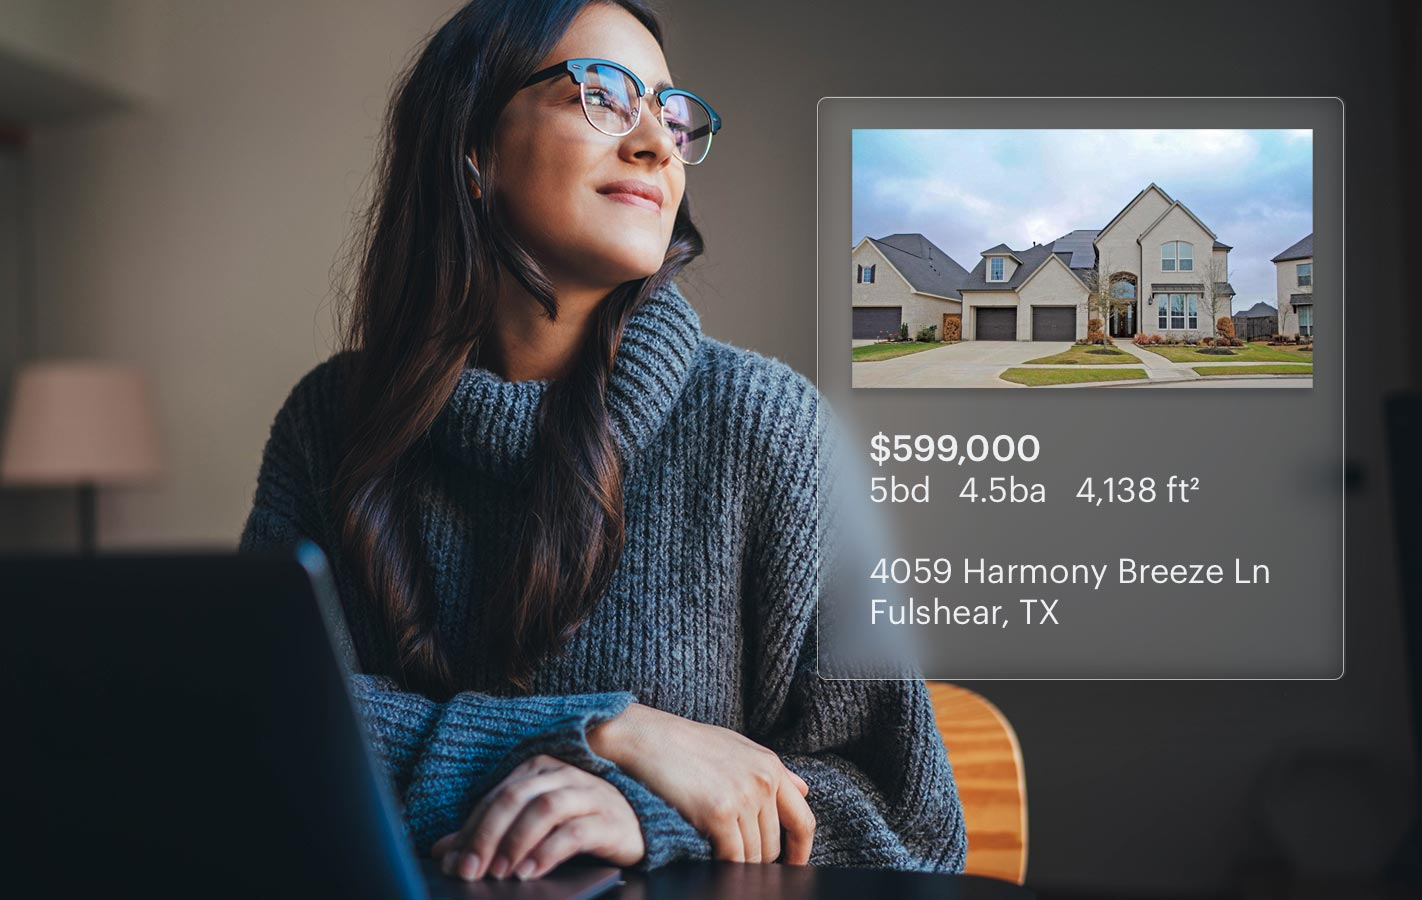 63% of homebuyers have never seen the house